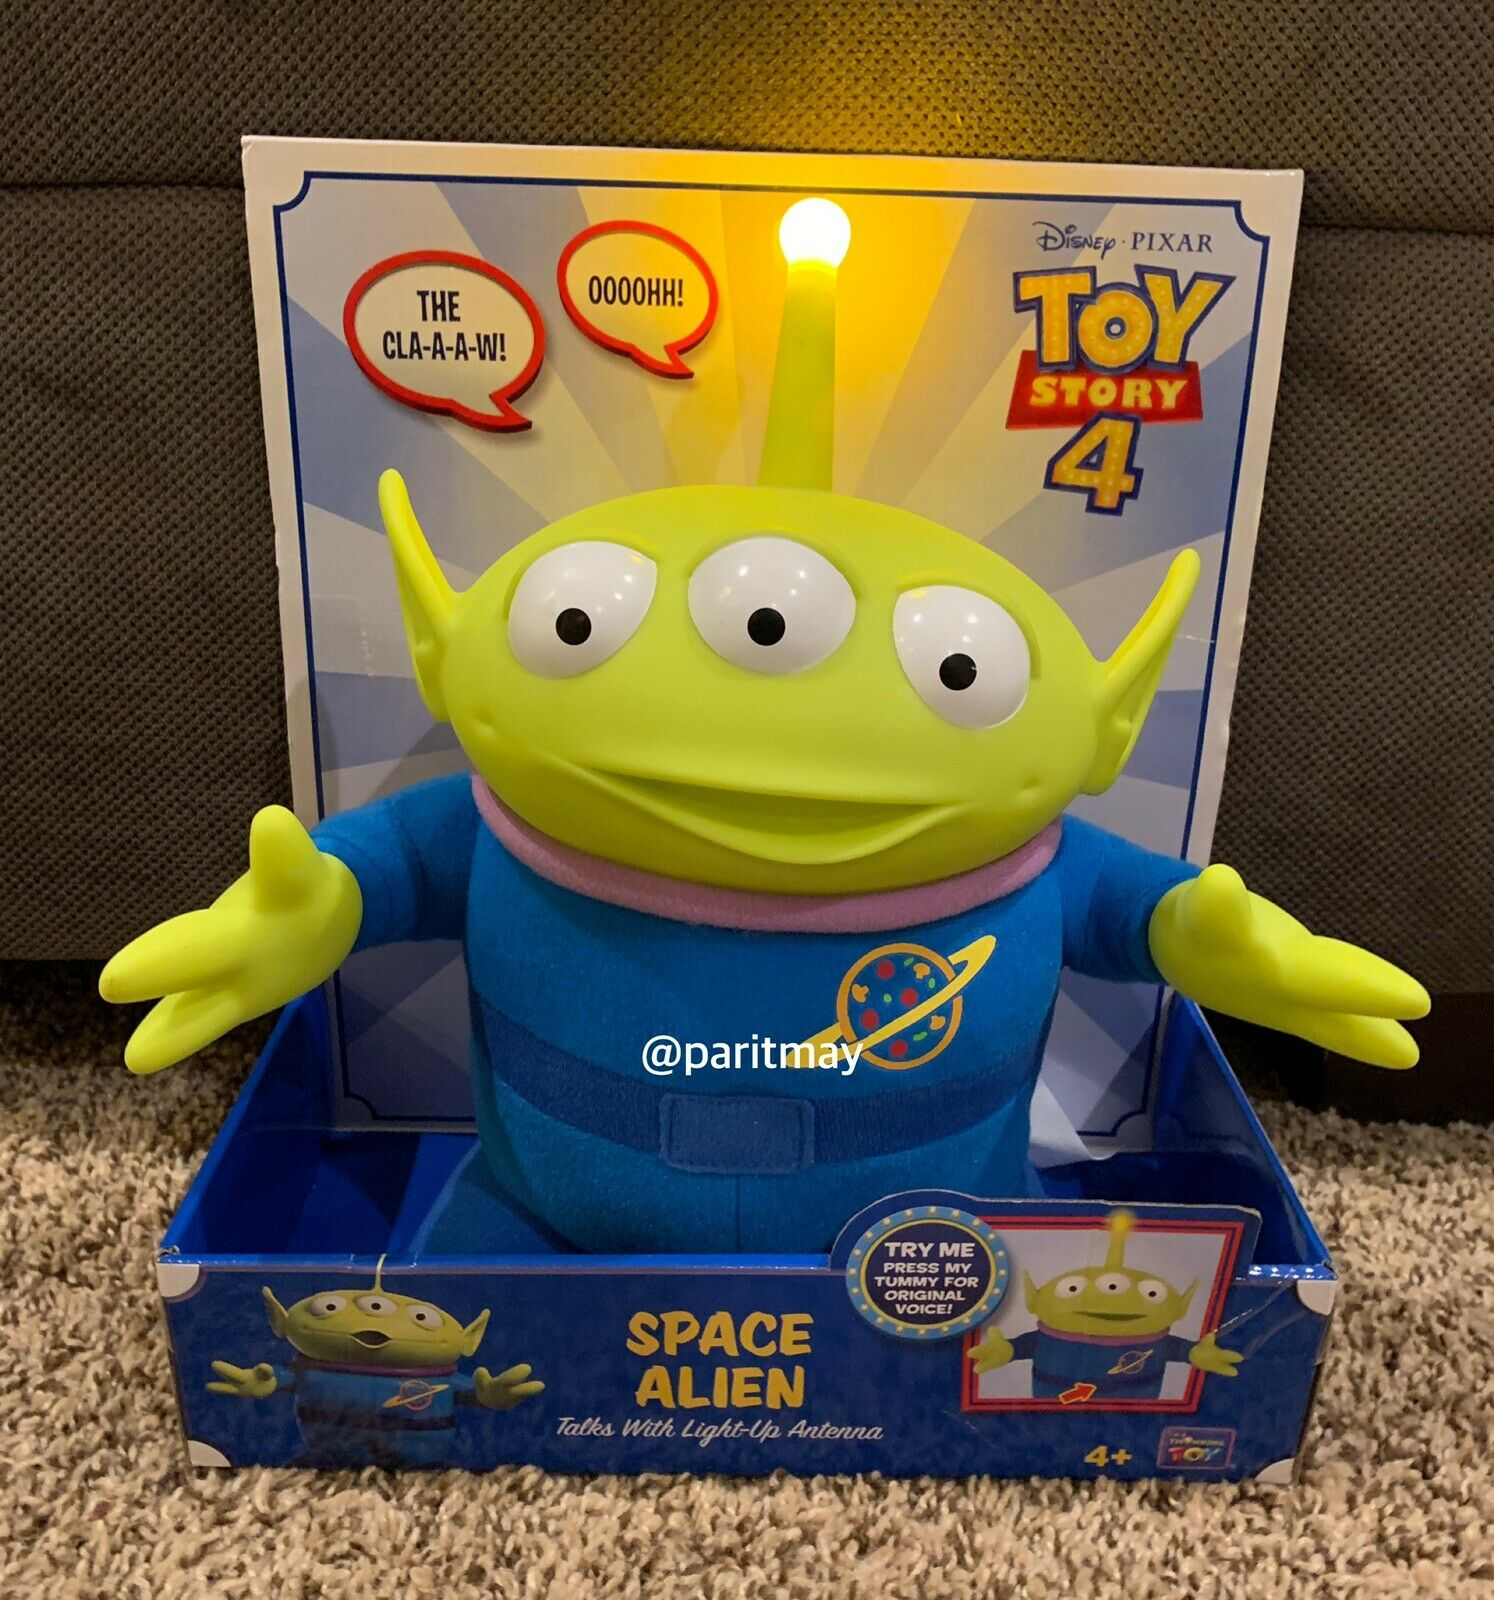 NEW    Toy Story 4 SPACE ALIEN Talks with Light-Up Antenna 11  (READY TO SHIP)